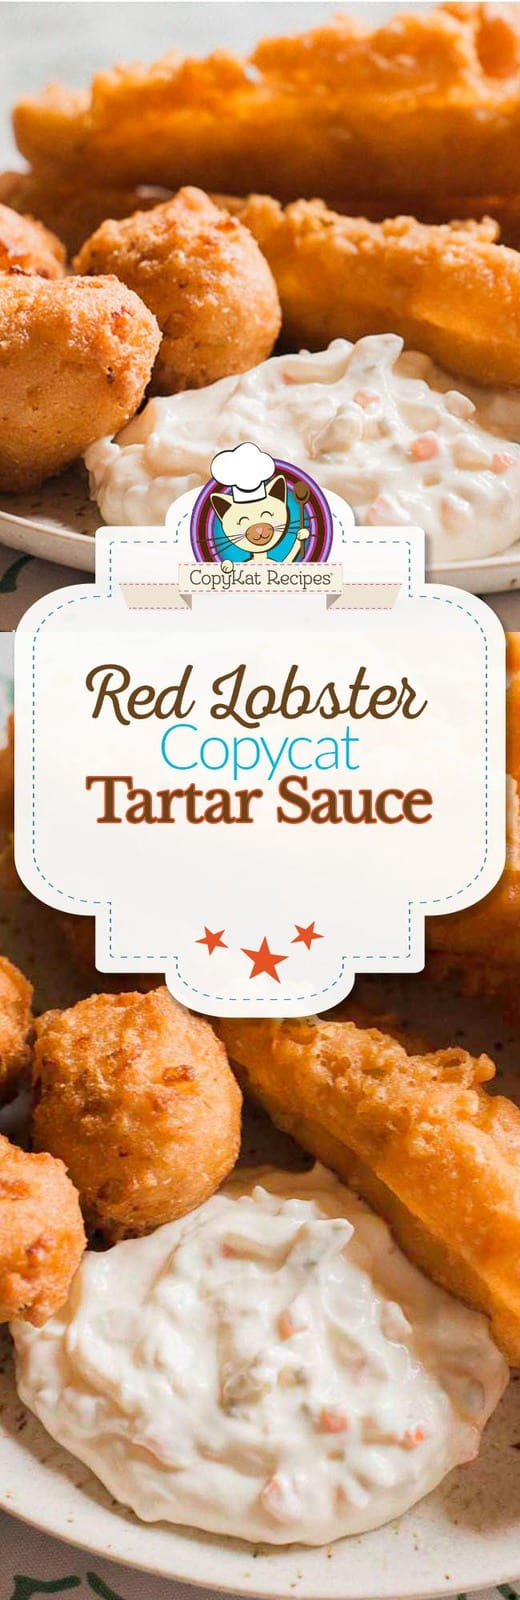 Make your own copycat recipe for Red Lobster Tartar sauce with this easy recipe. #tartar #tartarsauce #mayonniase #copycat #copycatrecipe #sauce #redlobster #homemade